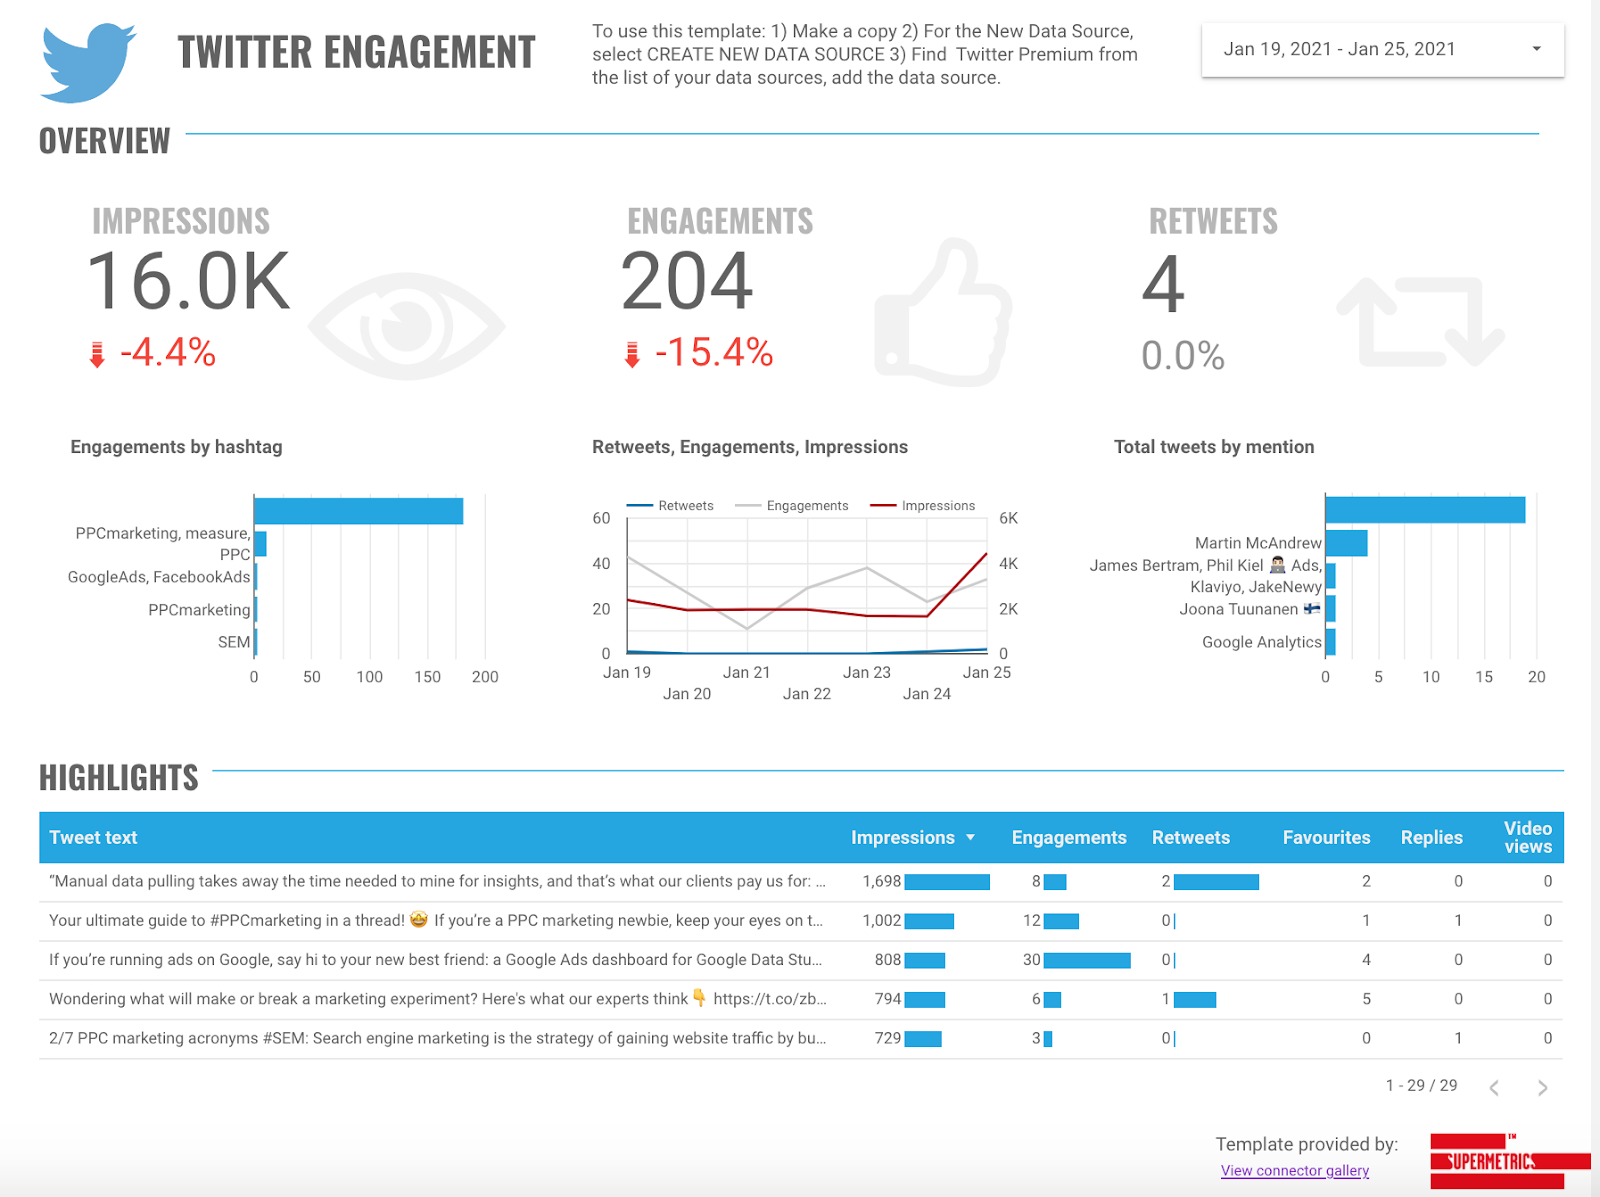 twitter engagement dashboard provided by supermetrics